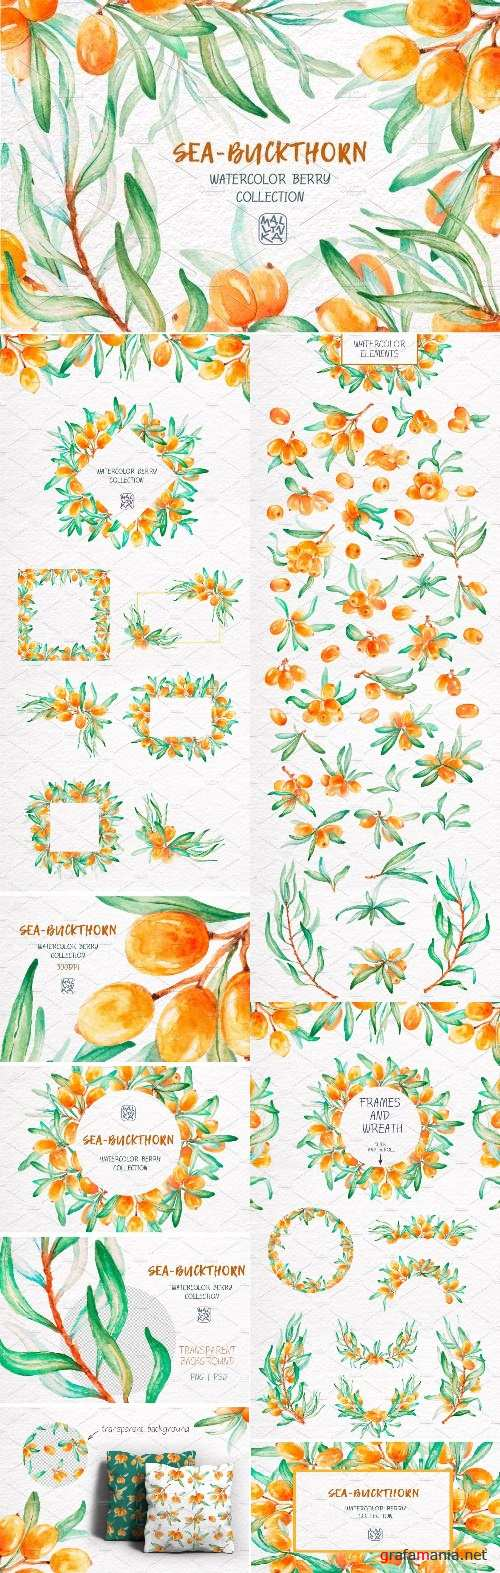 Sea-Buckthorn, Watercolor Collection - 2445710